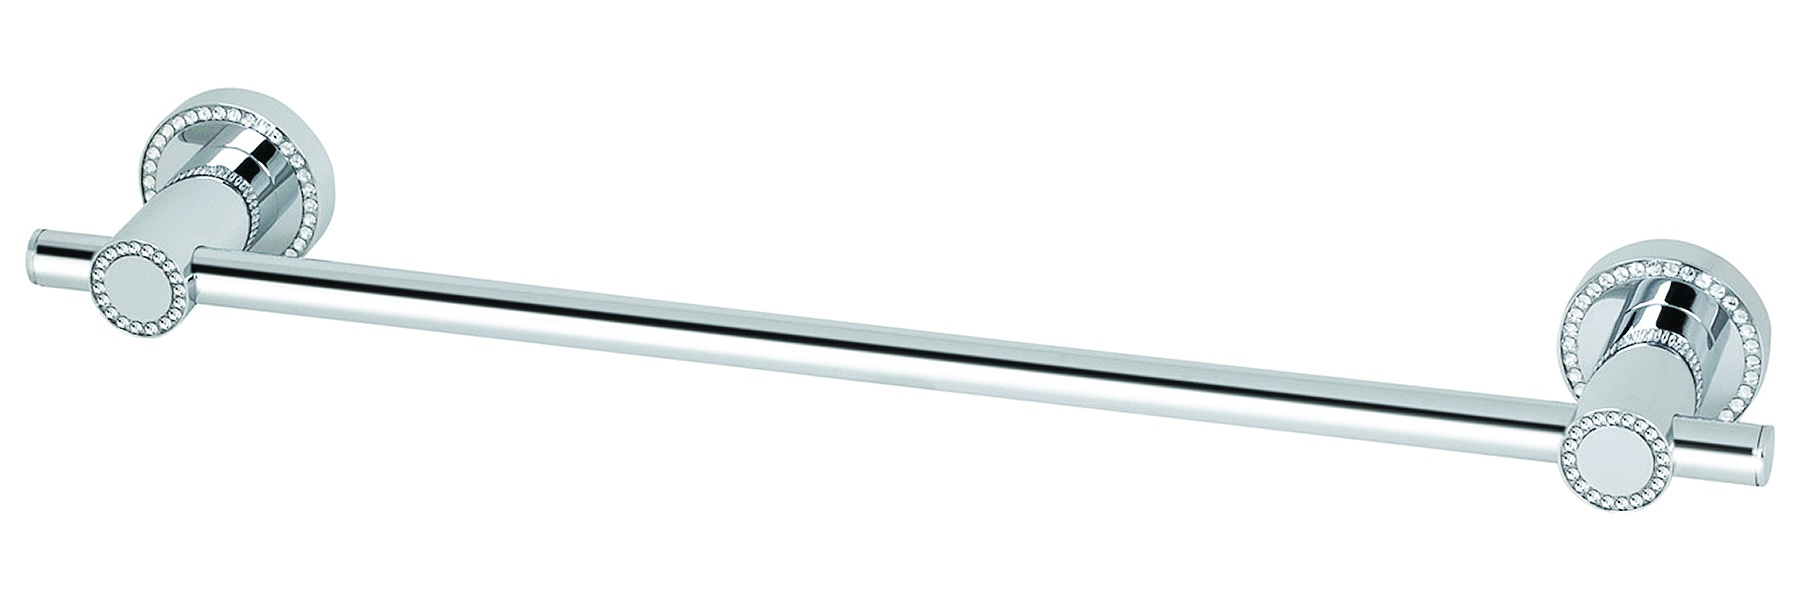 "Topex Hardware A101030301 12"" Towel Bar Swarovski Crystals - Chrome"